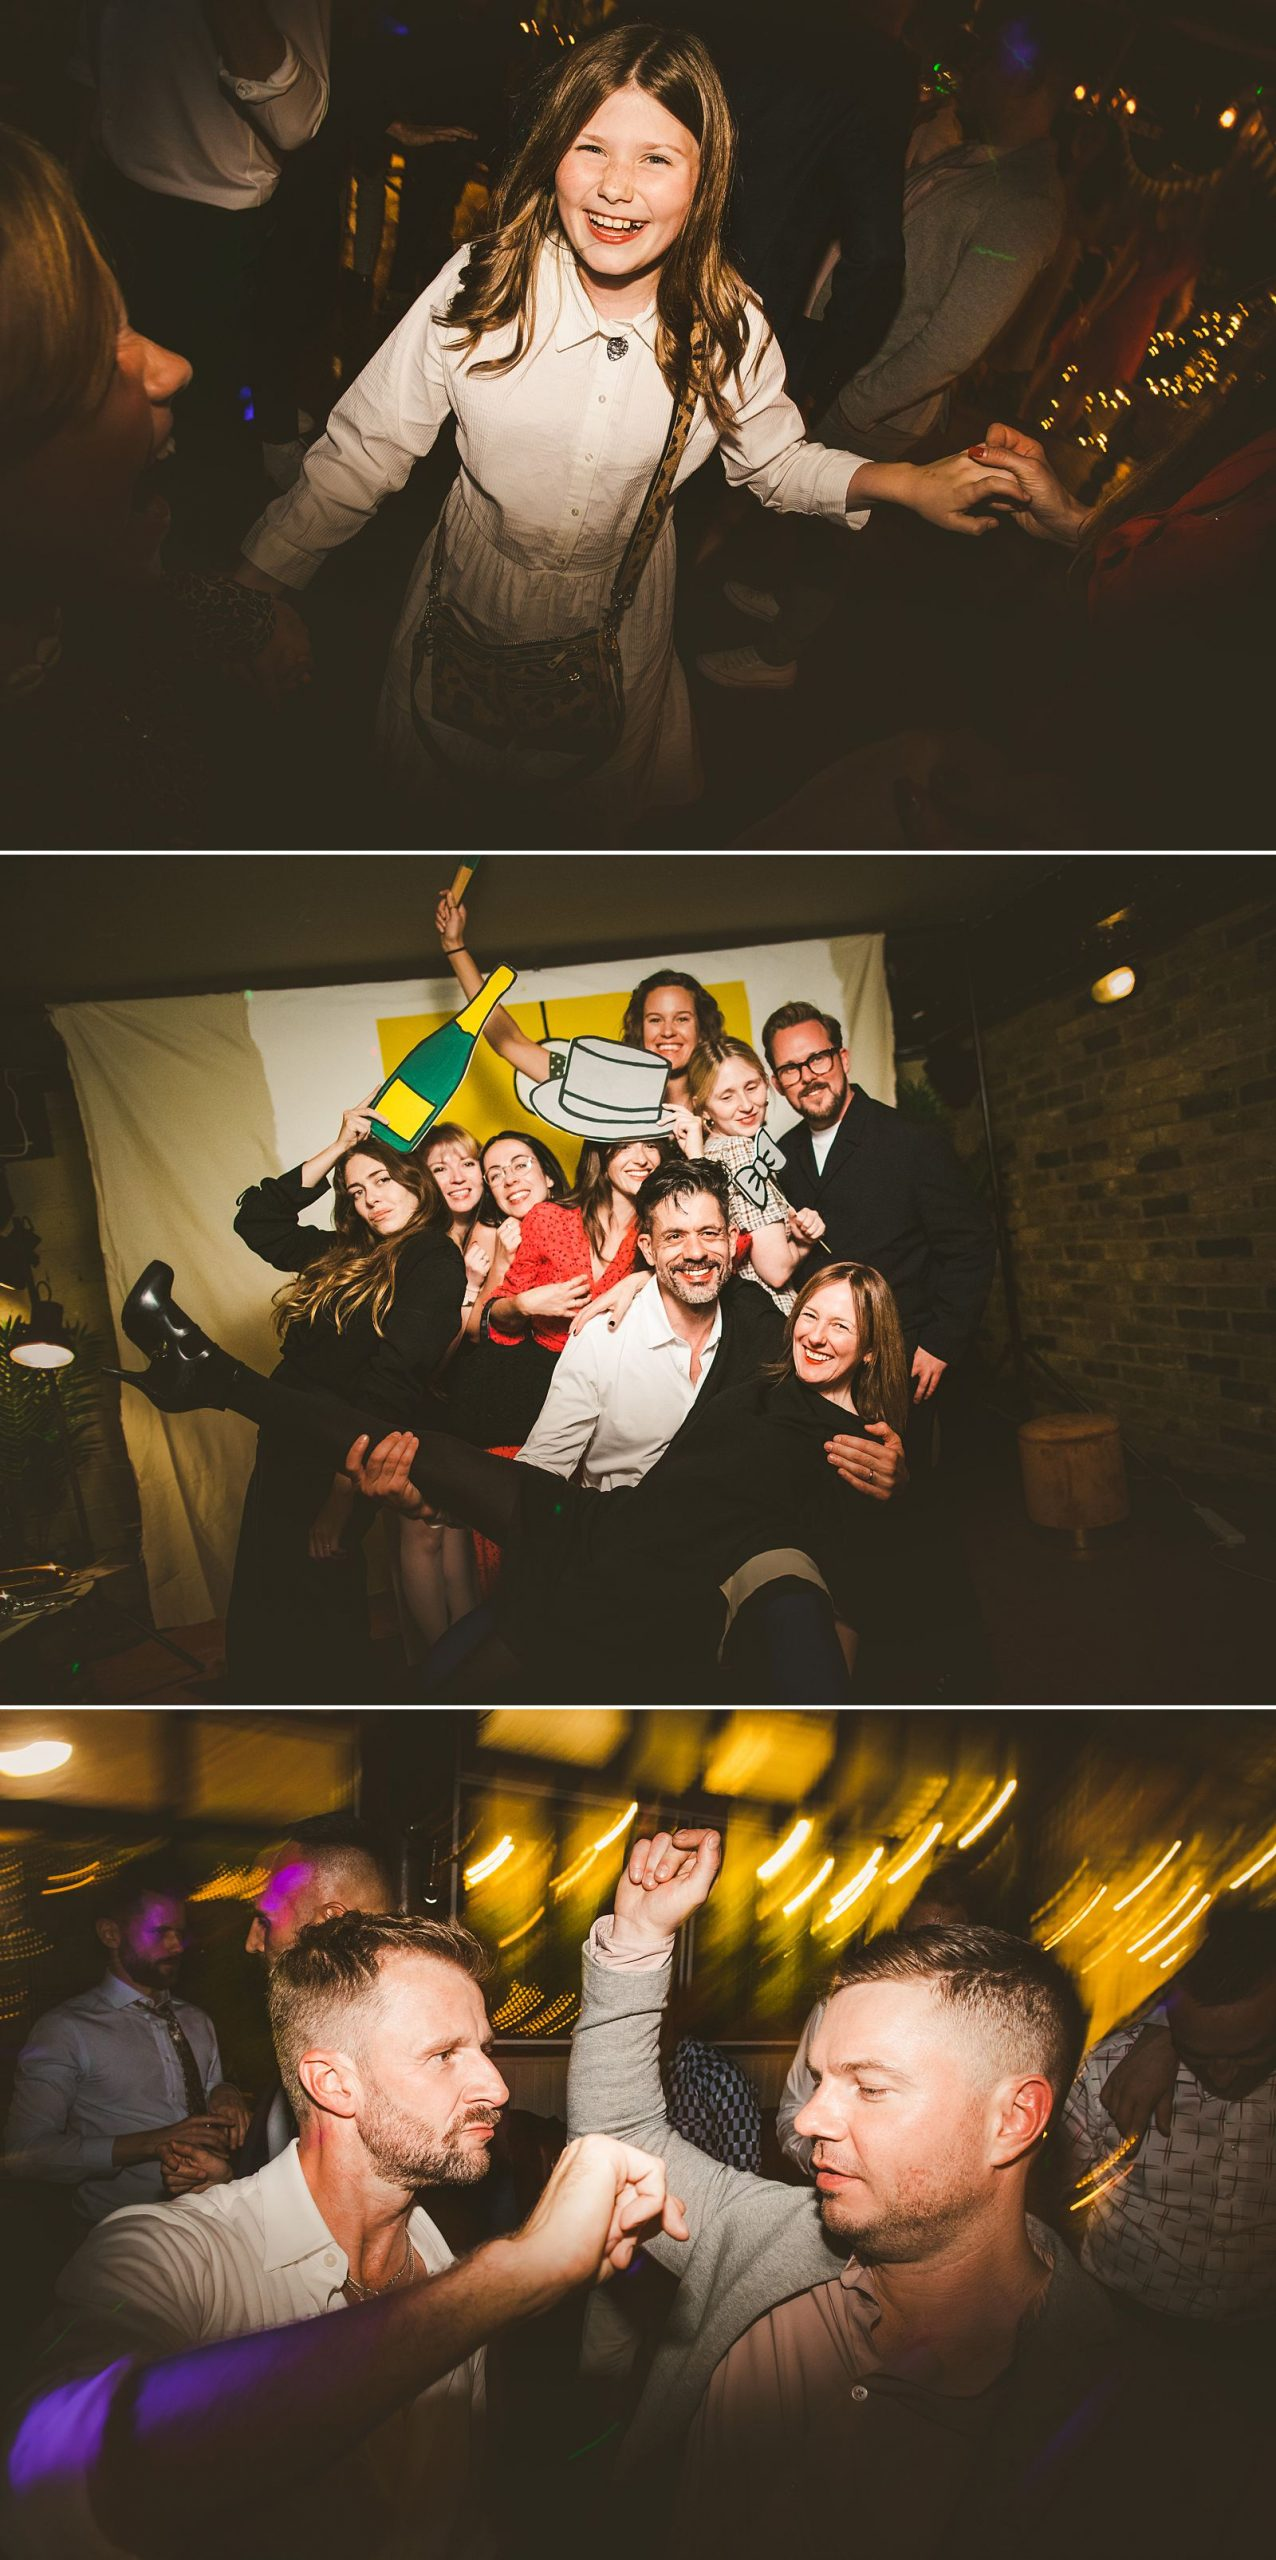 Creative wedding photography nighttime low light